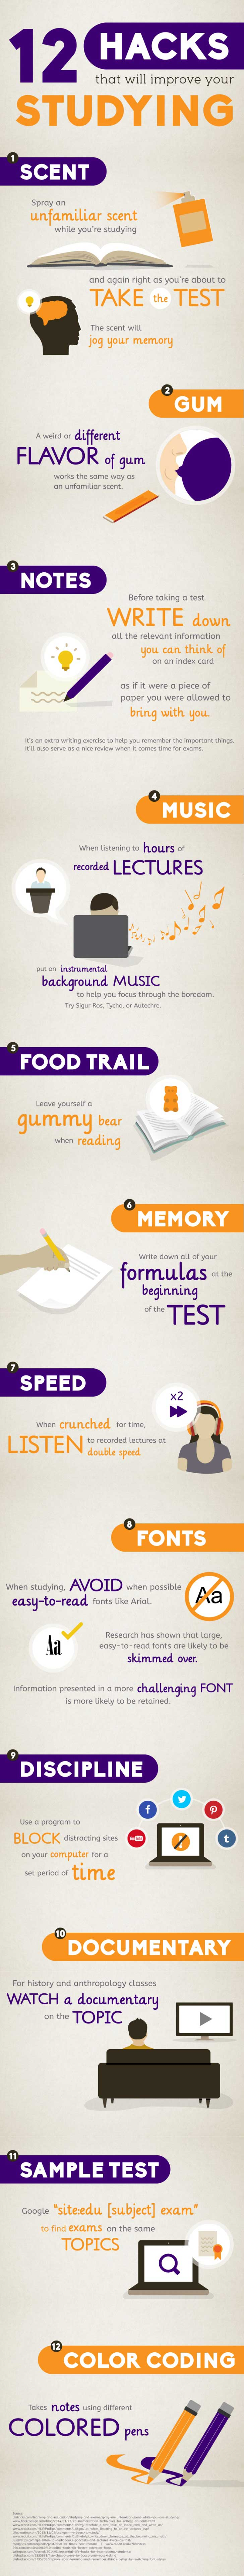 12 Unusual Study Hacks for College Students infographic